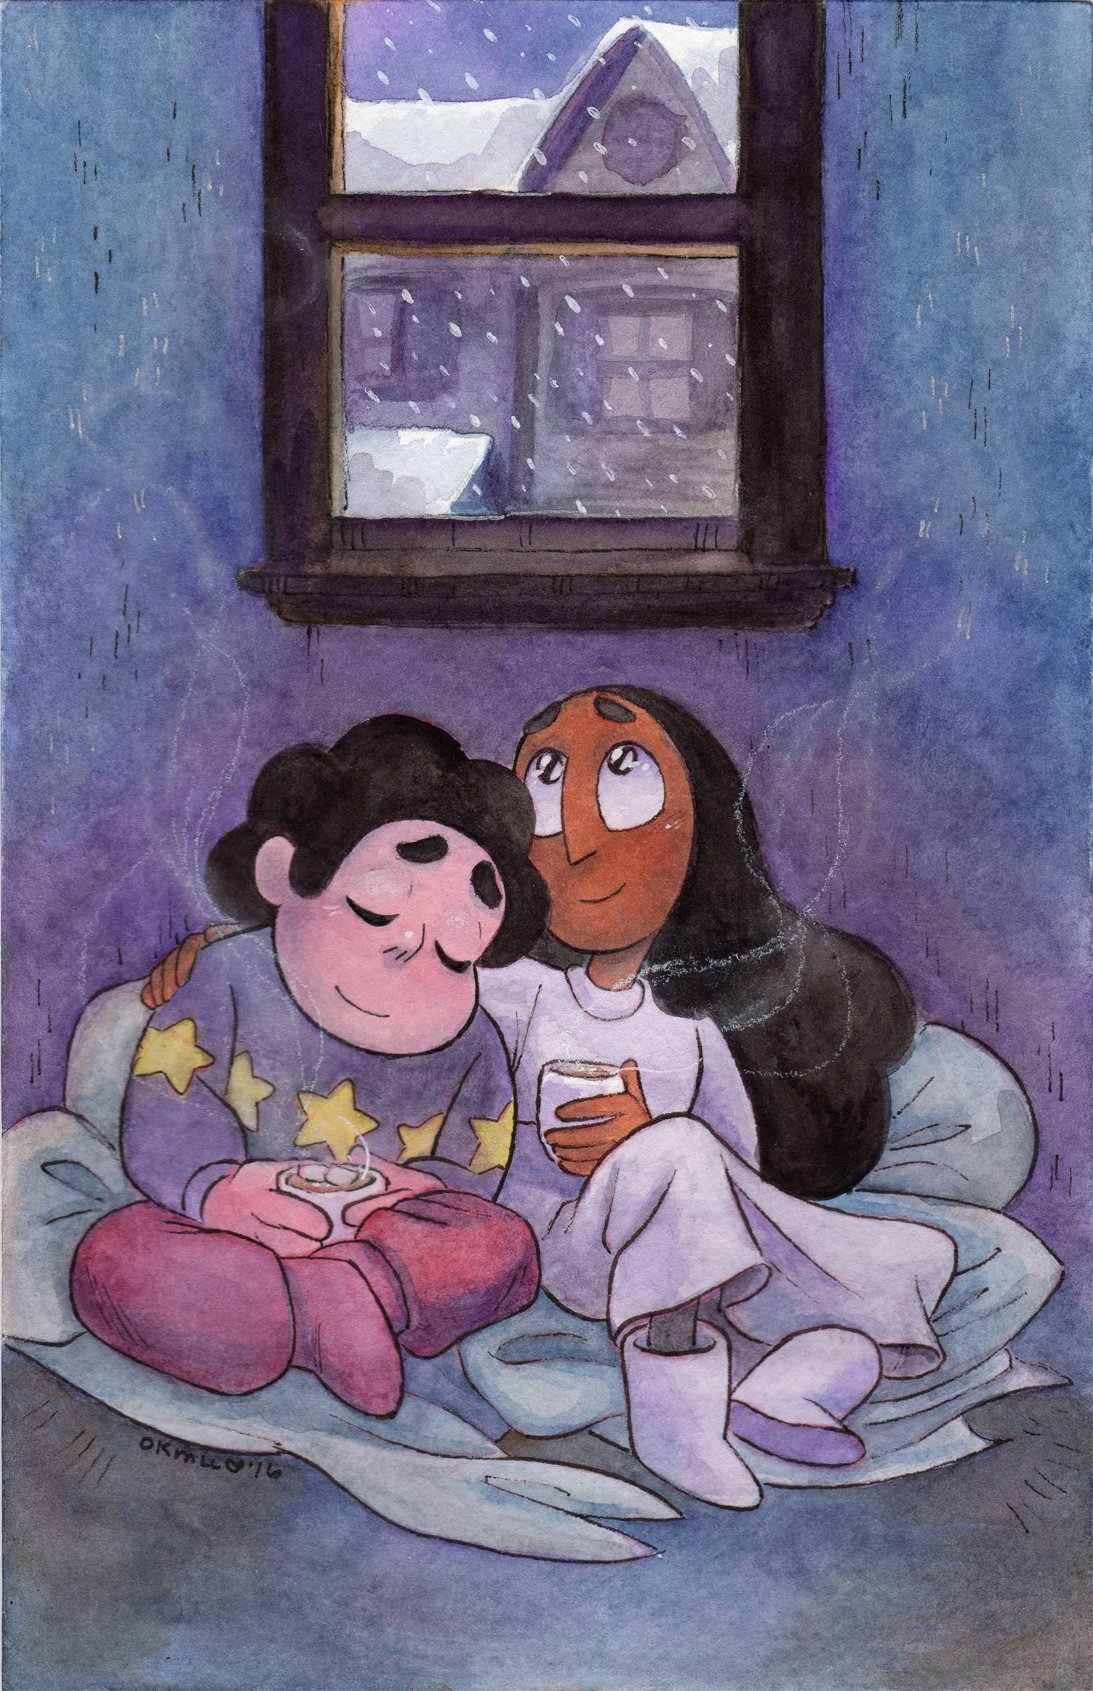 """Summertime's right around the corner, but it still feels a lot like cuddle weather! #StevenUniverse #Connie"""